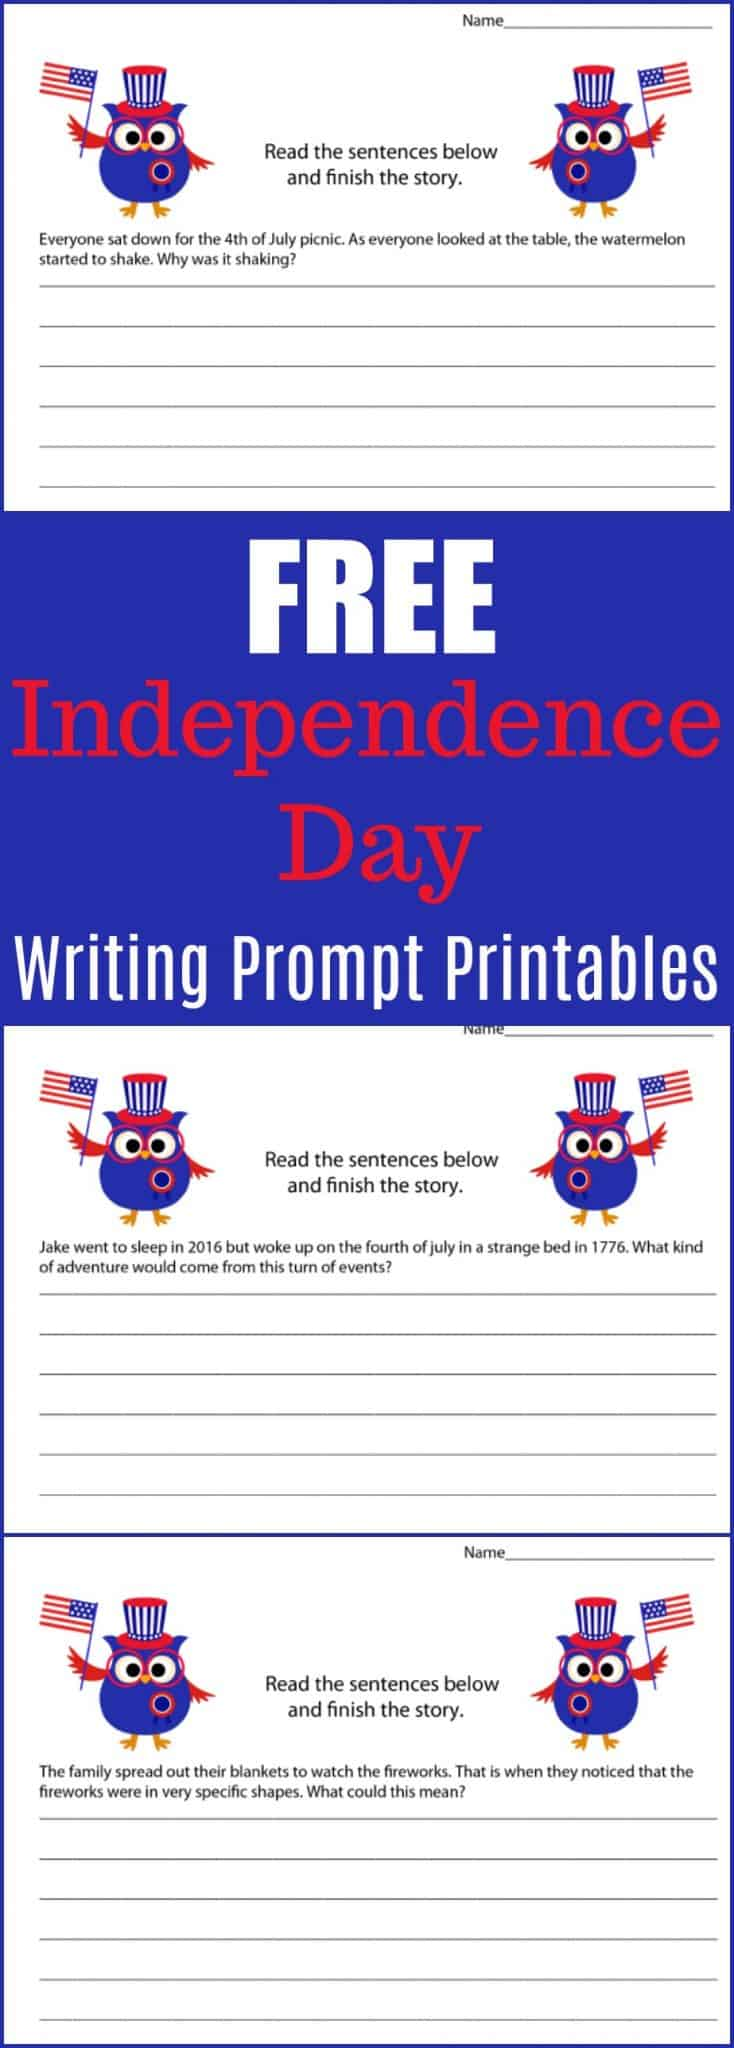 Free Independence Day Writing Prompt Printables - 4th of July Writing Prompt Printable Pack